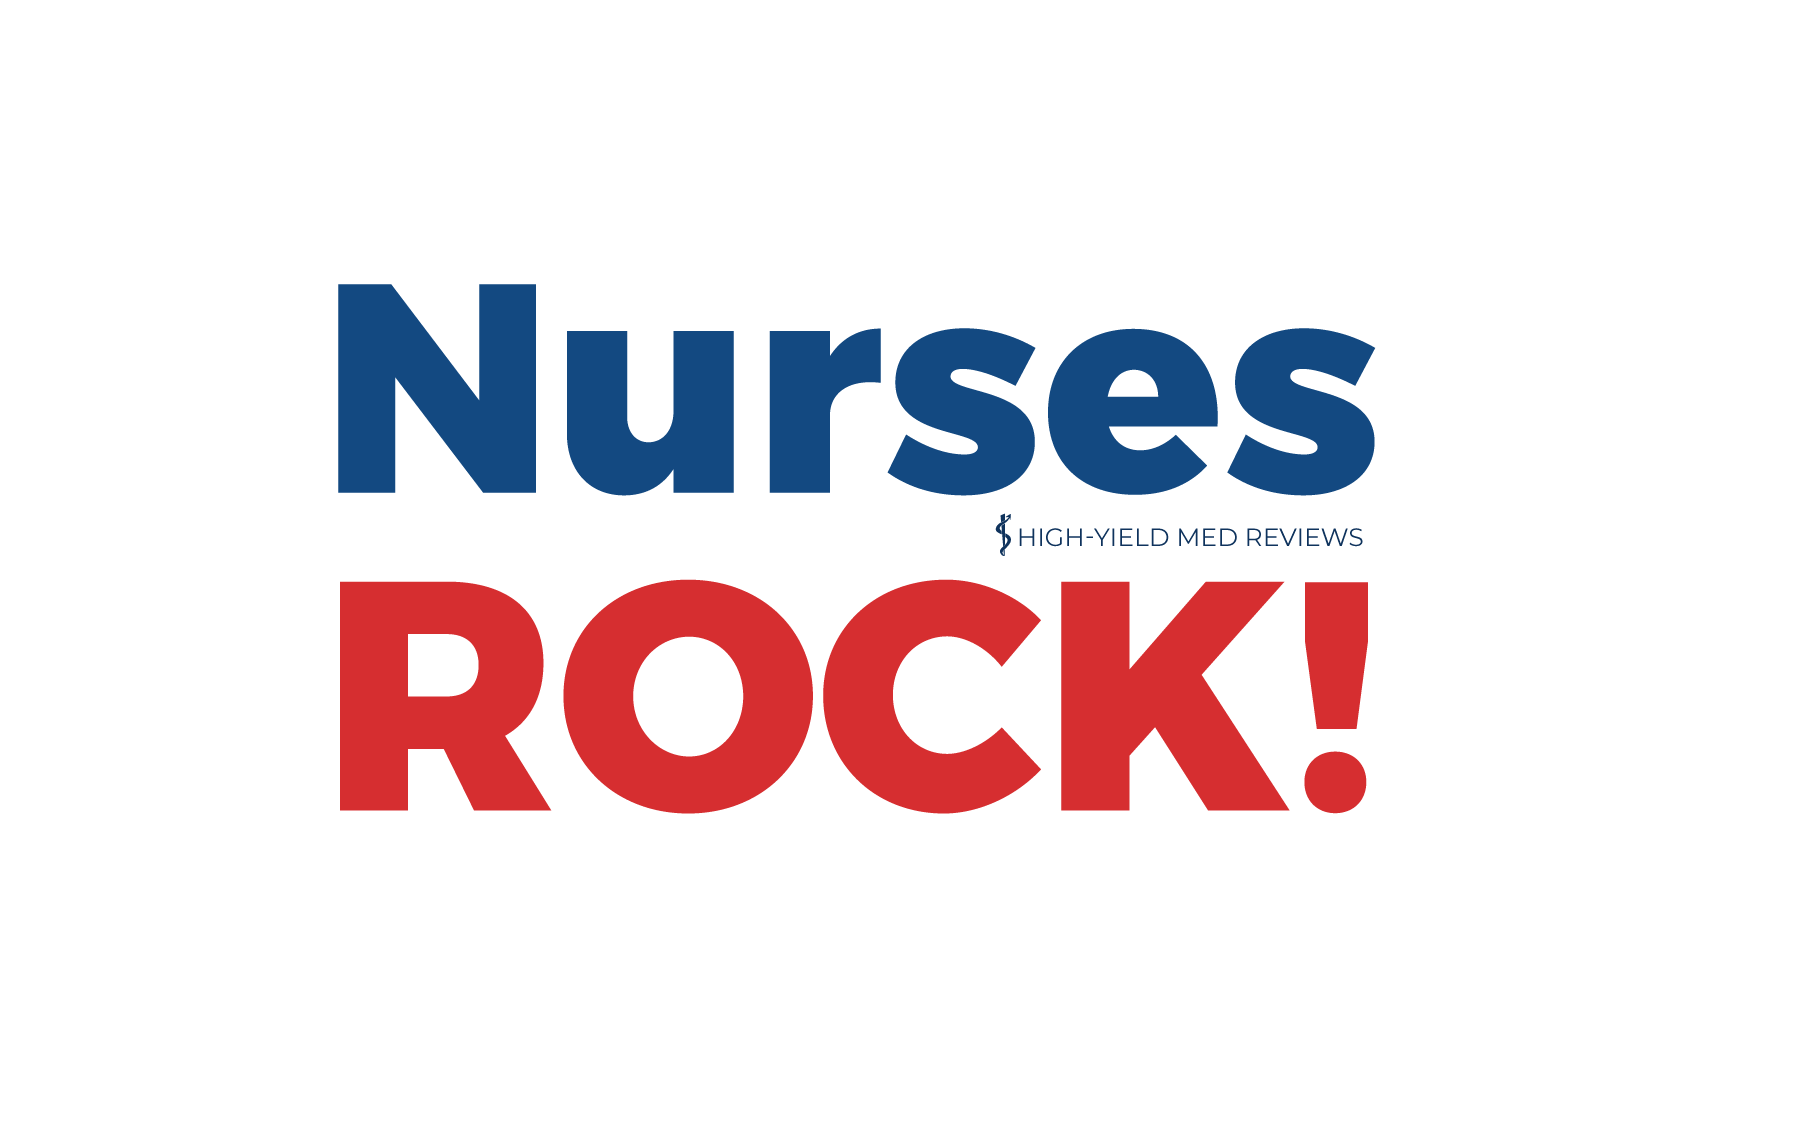 Nurses Rock red/blue text